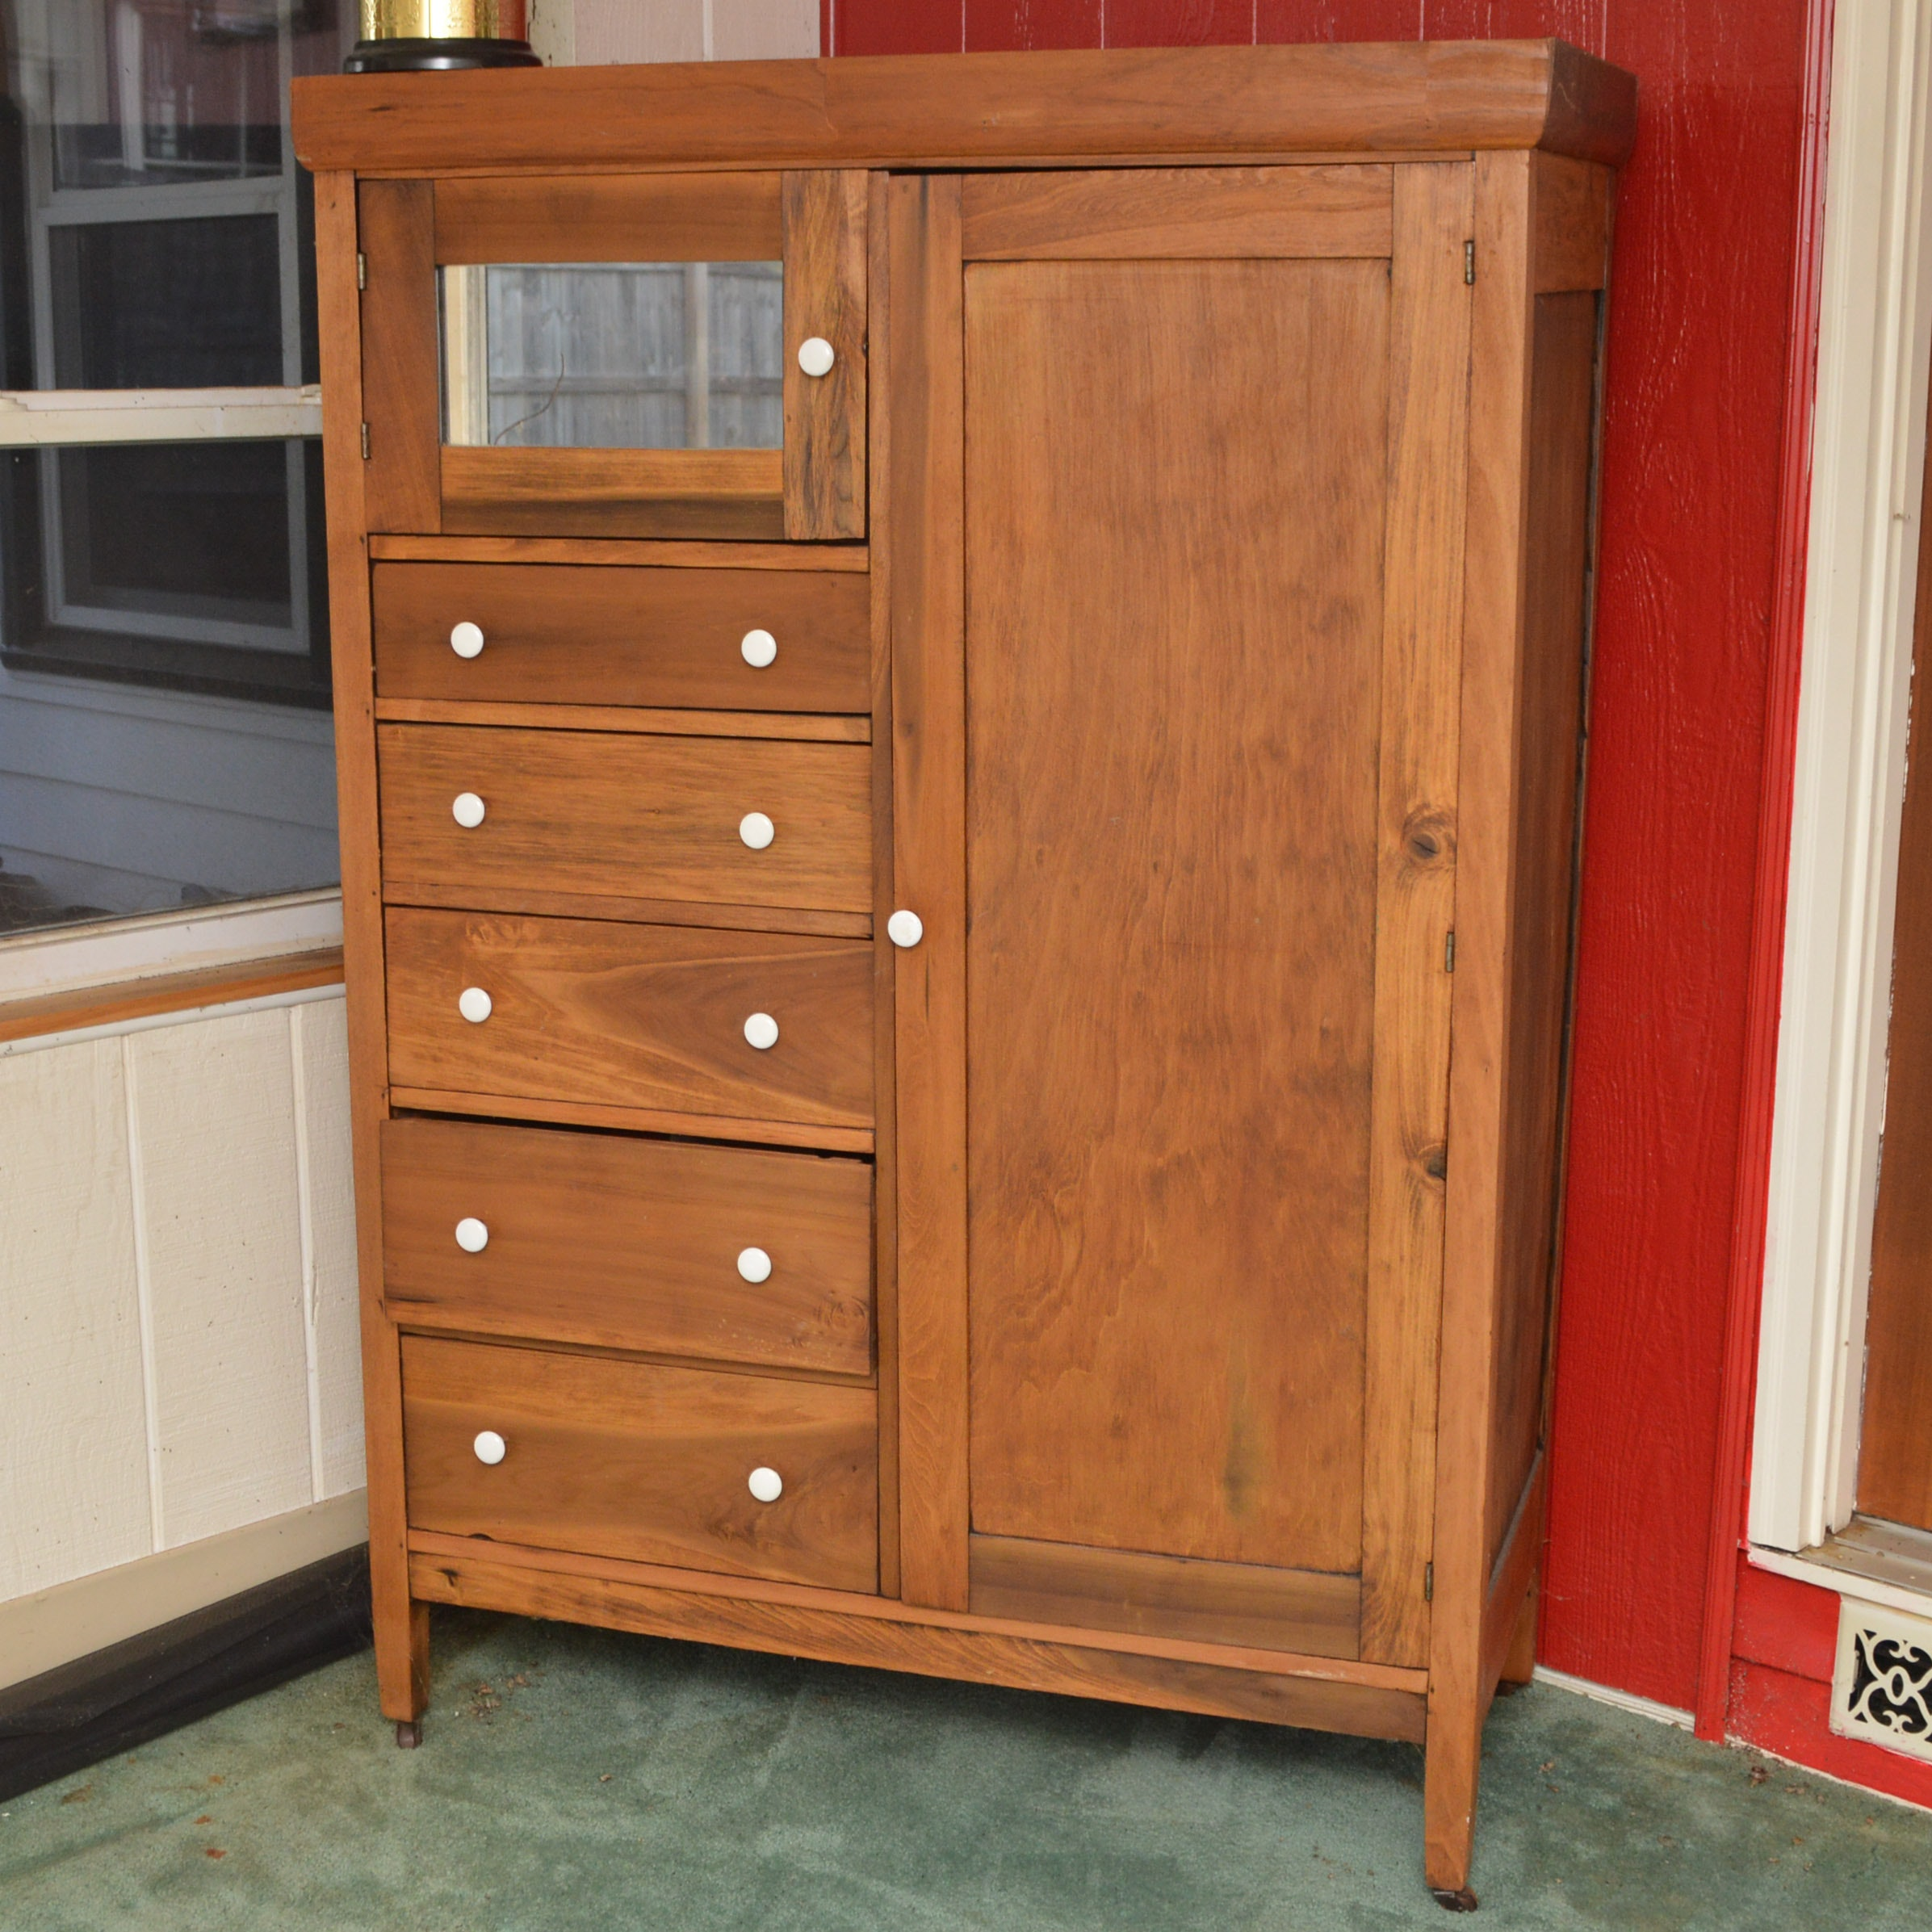 Vintage Pine Wardrobe with Mirror and Drawers